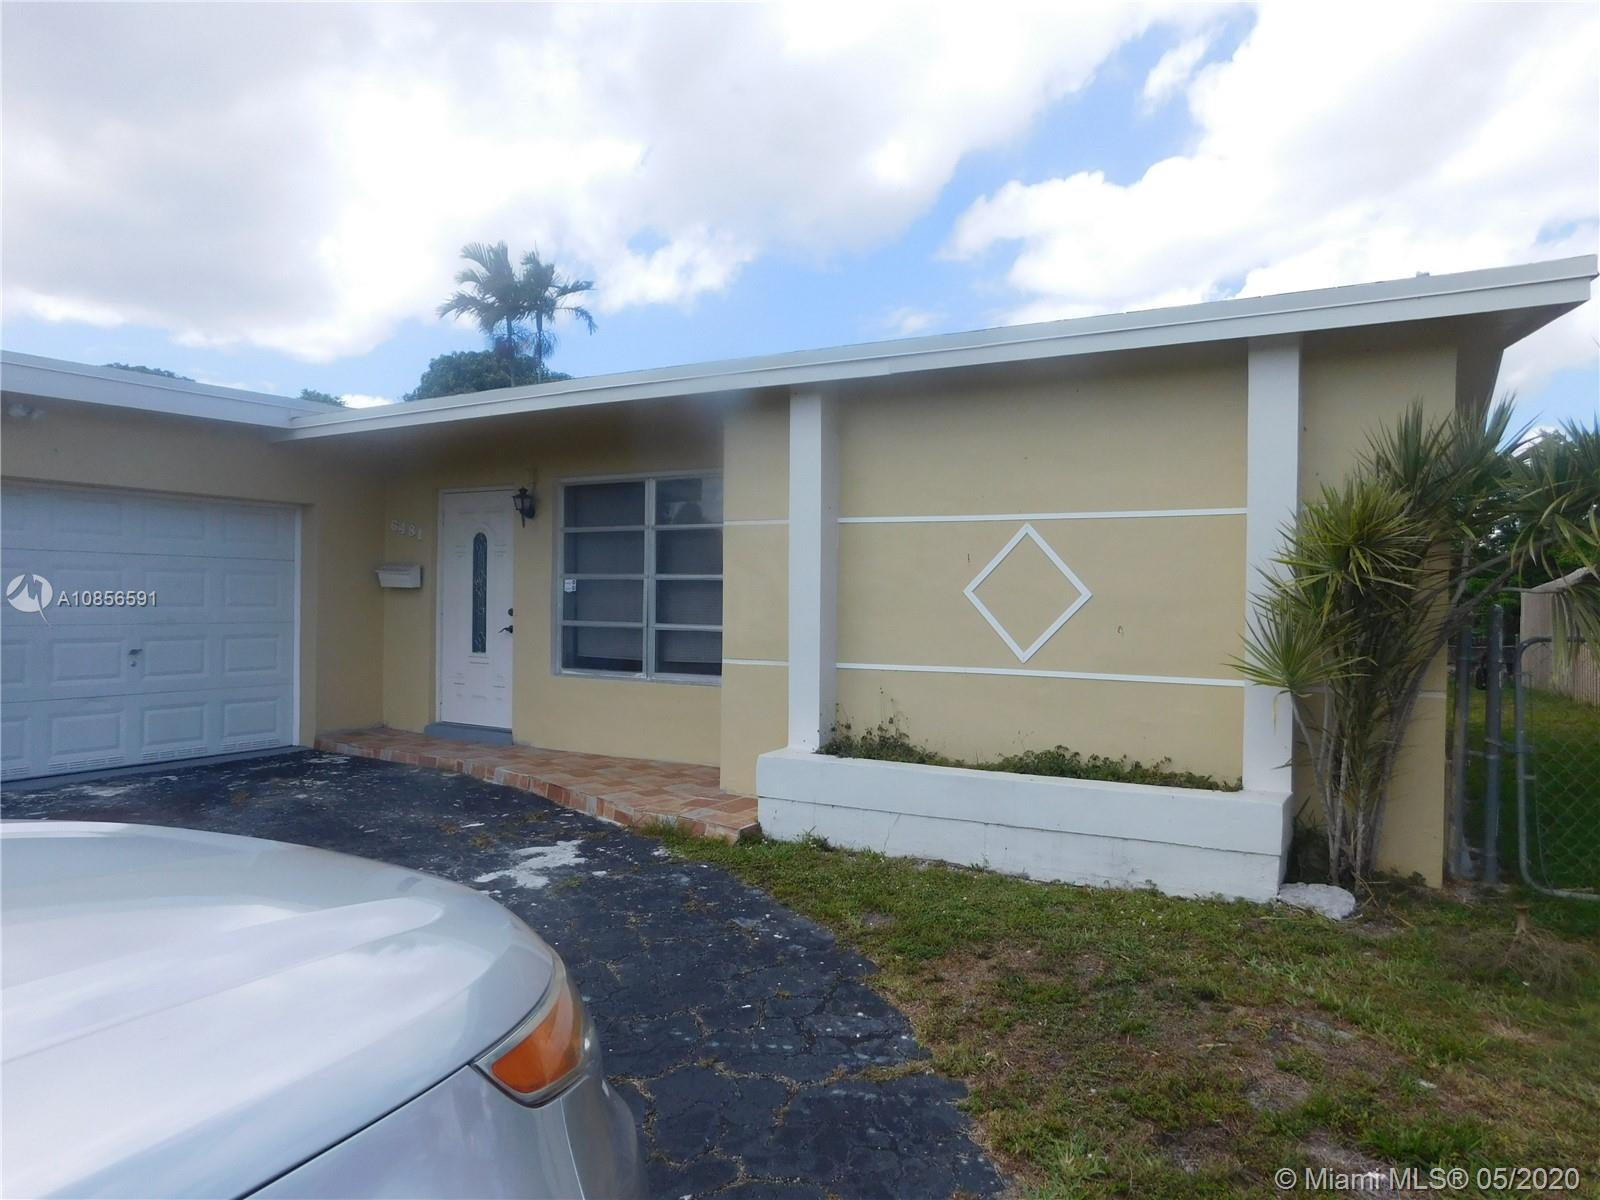 UPGRADED HOME WITH BRAND NEW KITCHEN W/GRANITE COUNTERS AND S/S APPLIANCES, NEWER - BATHROOMS, NEW WOOD FLOORS IN BEDROOMS, COMPLETELY PAINTED INSIDE AND OUT, FULL SIZE FLORIDA ROOM OVERLOOKING CANAL AT BACK, PRIVACY FENCE WITH NO NEIGHBORS AT BACK, FRUIT TREES, QUIET STREET, MOVE-IN CONDITION. CALL AGENT TODAY FOR MORE DETAILS.